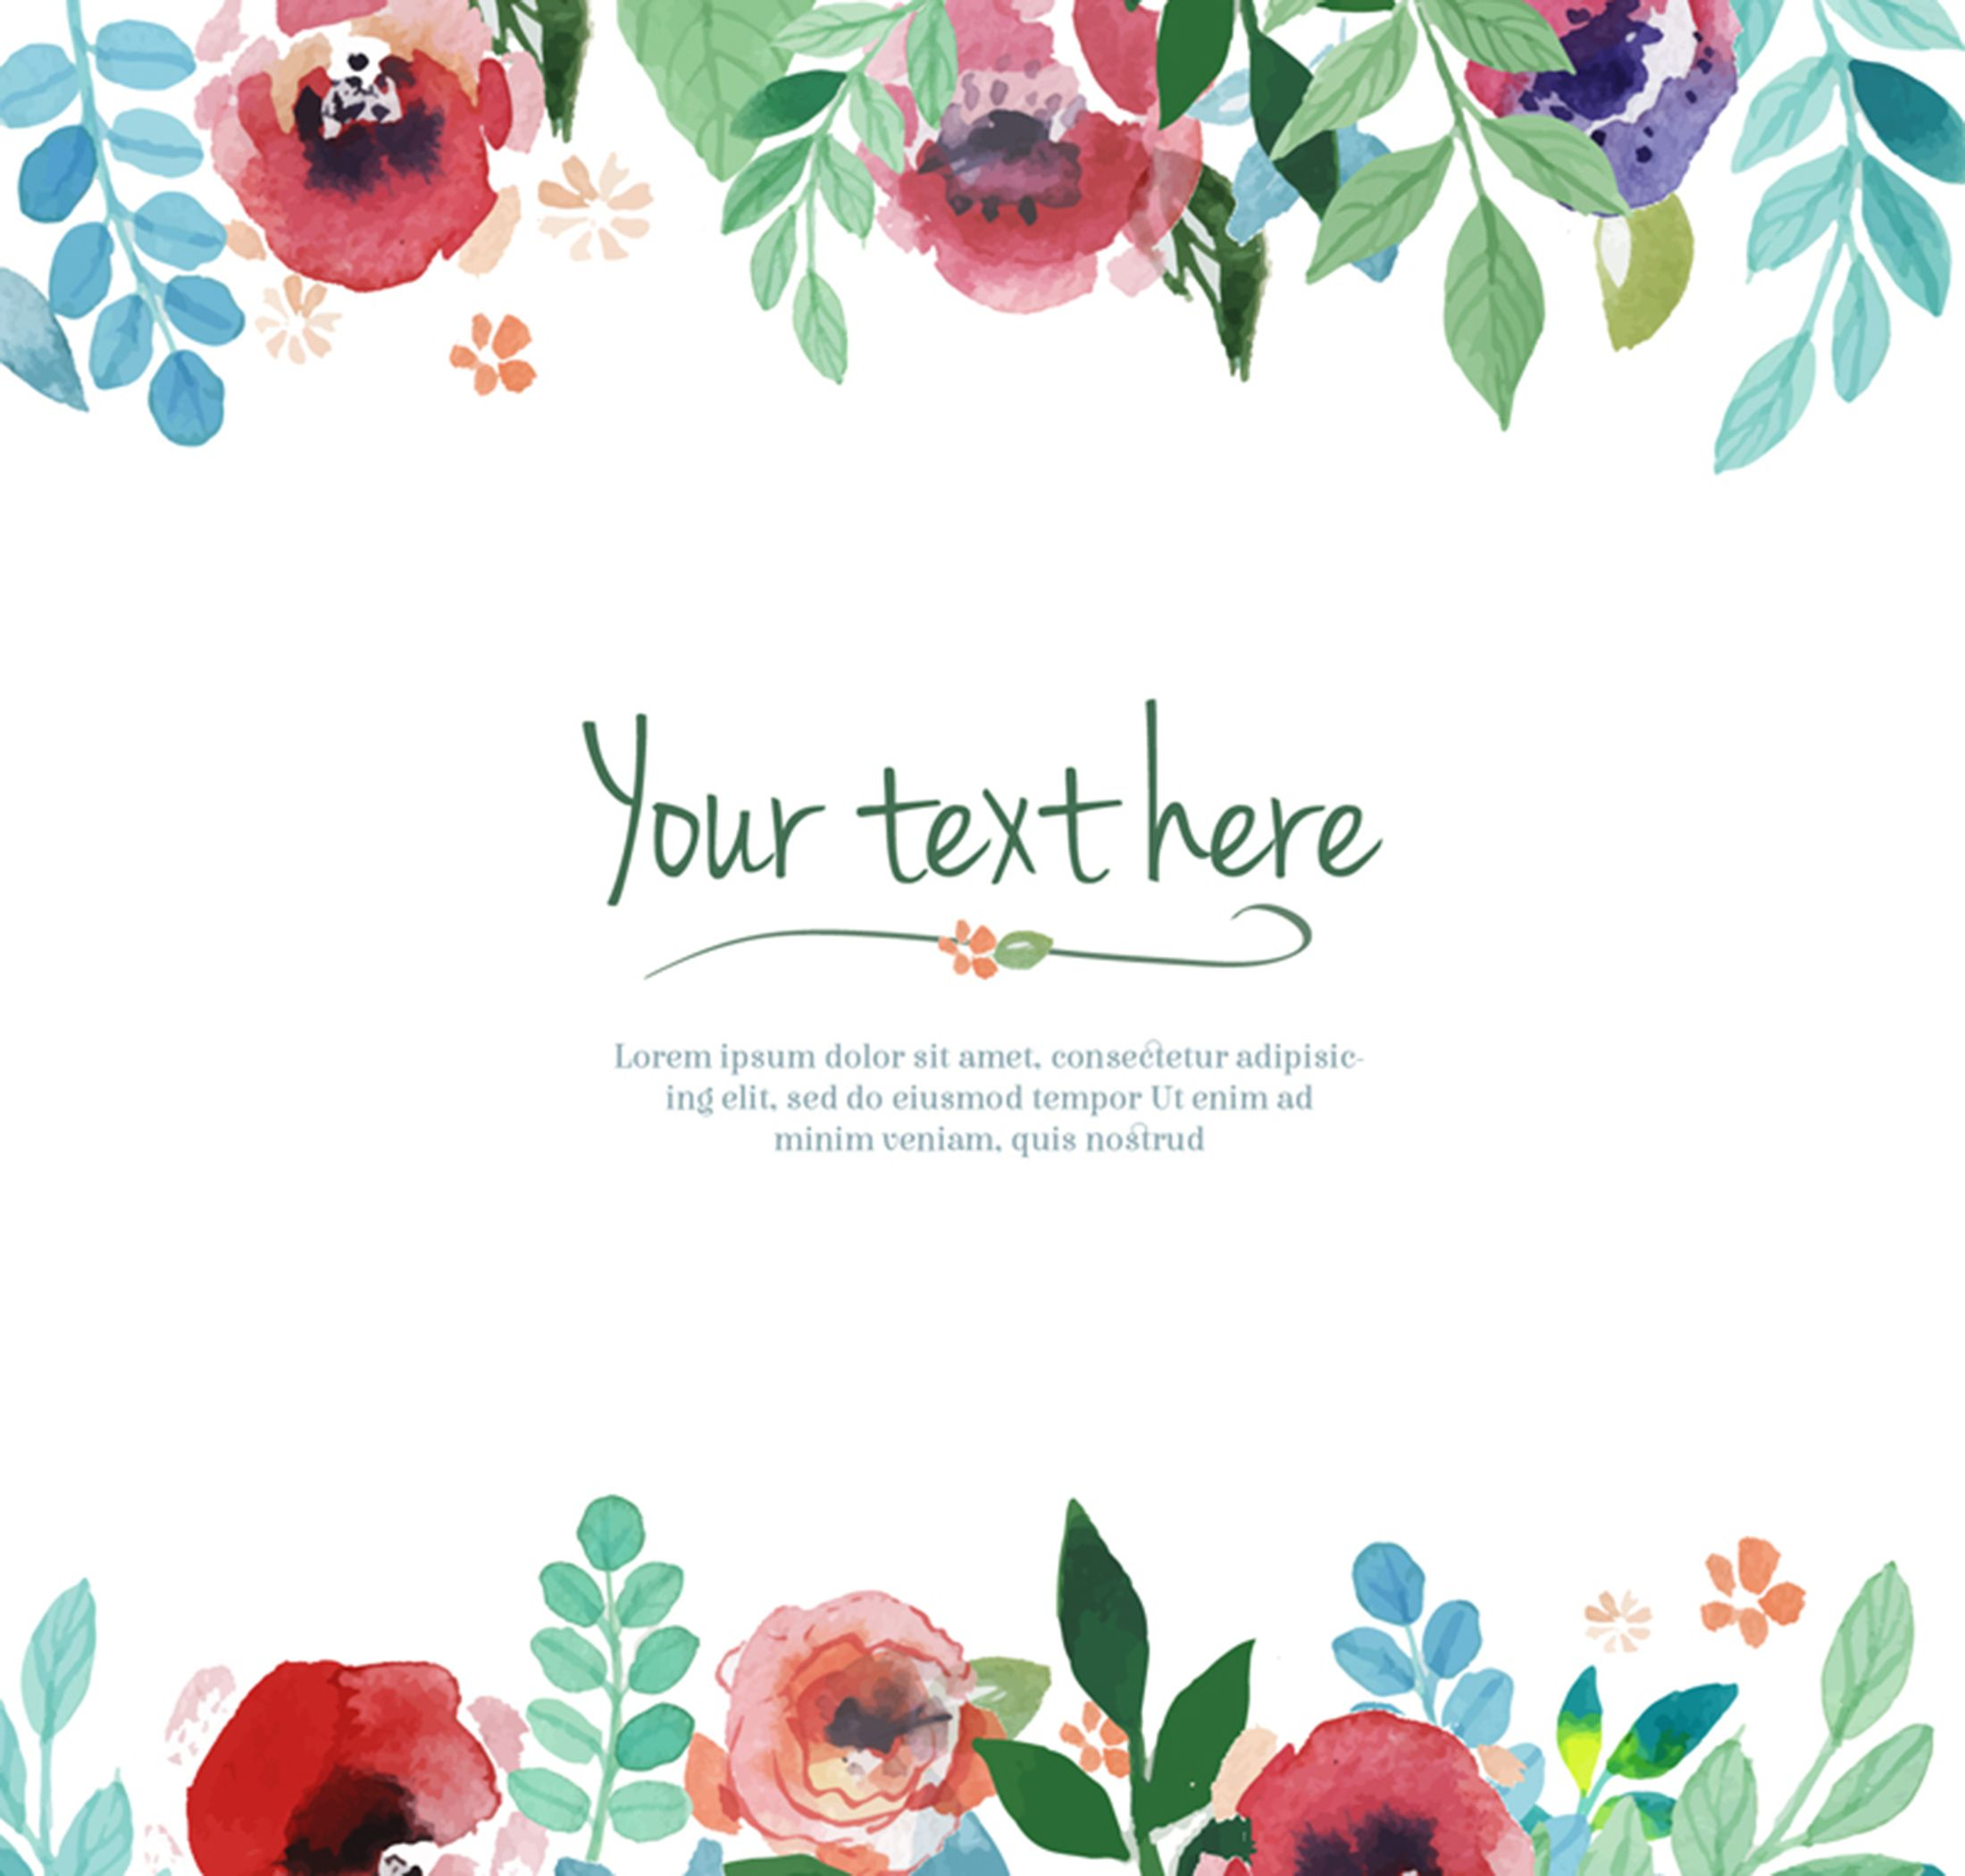 Watercolor Floral Border Background Material Floral Border